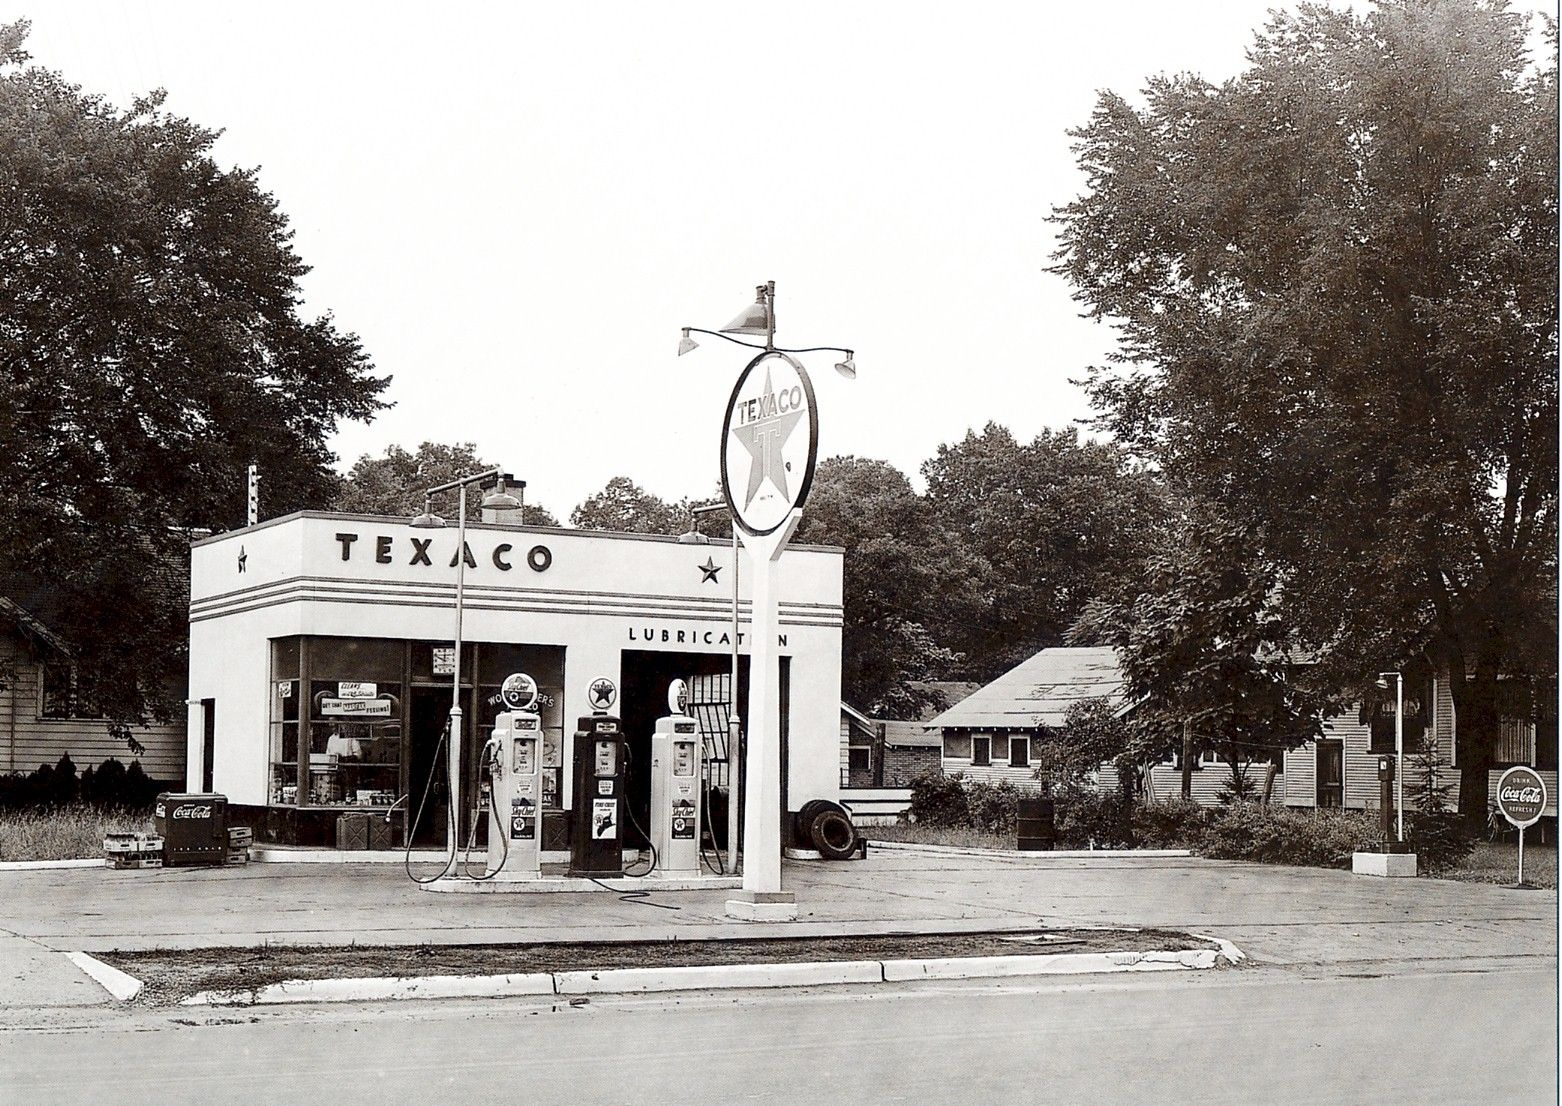 Texaco Apple AVE. Muskegon, MI 1941 old gas stations